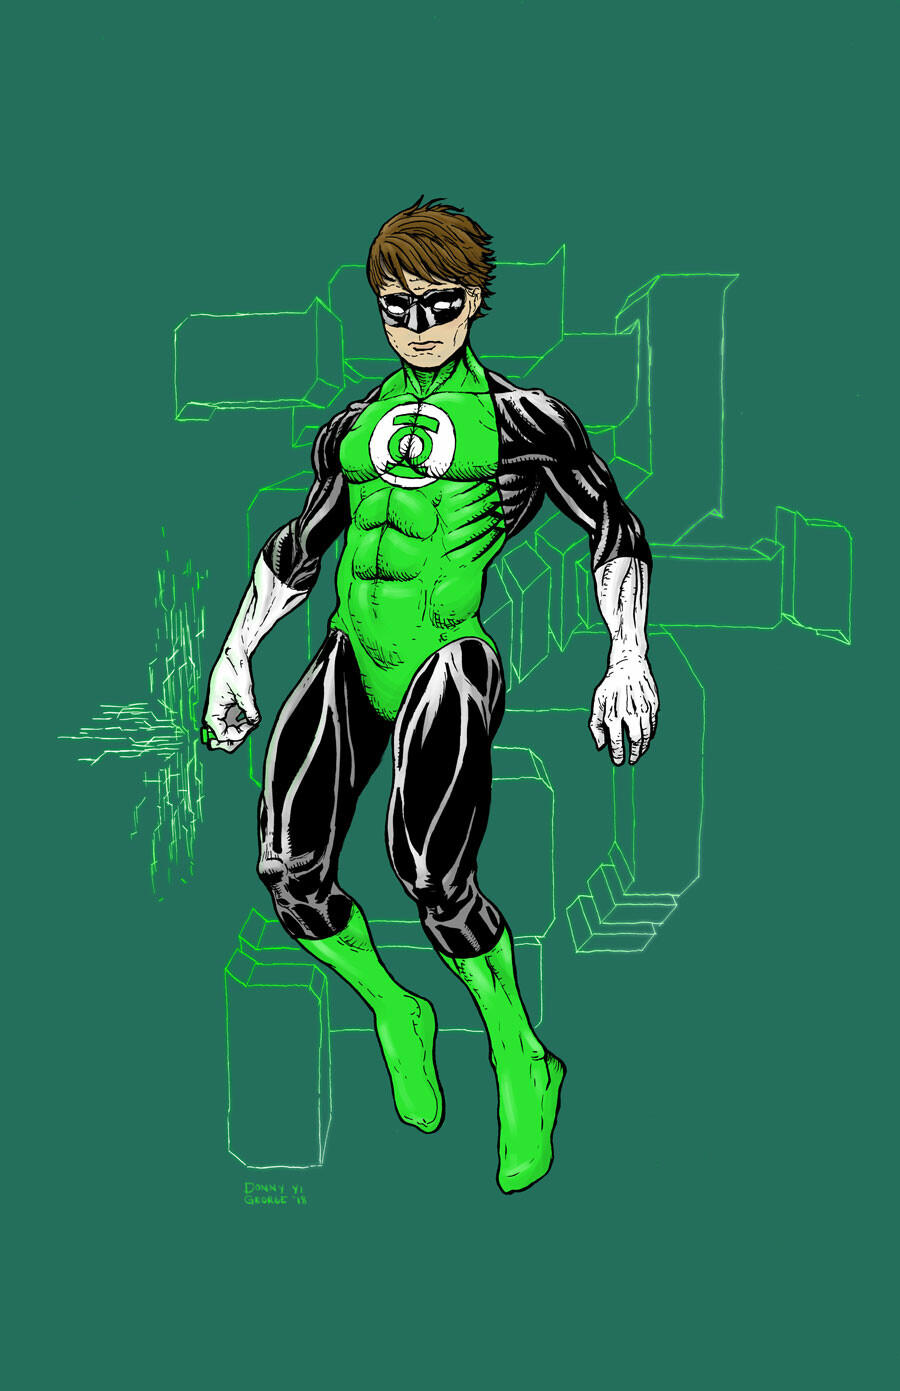 Donny yi george 002 green lantern donny yi george 2018 color